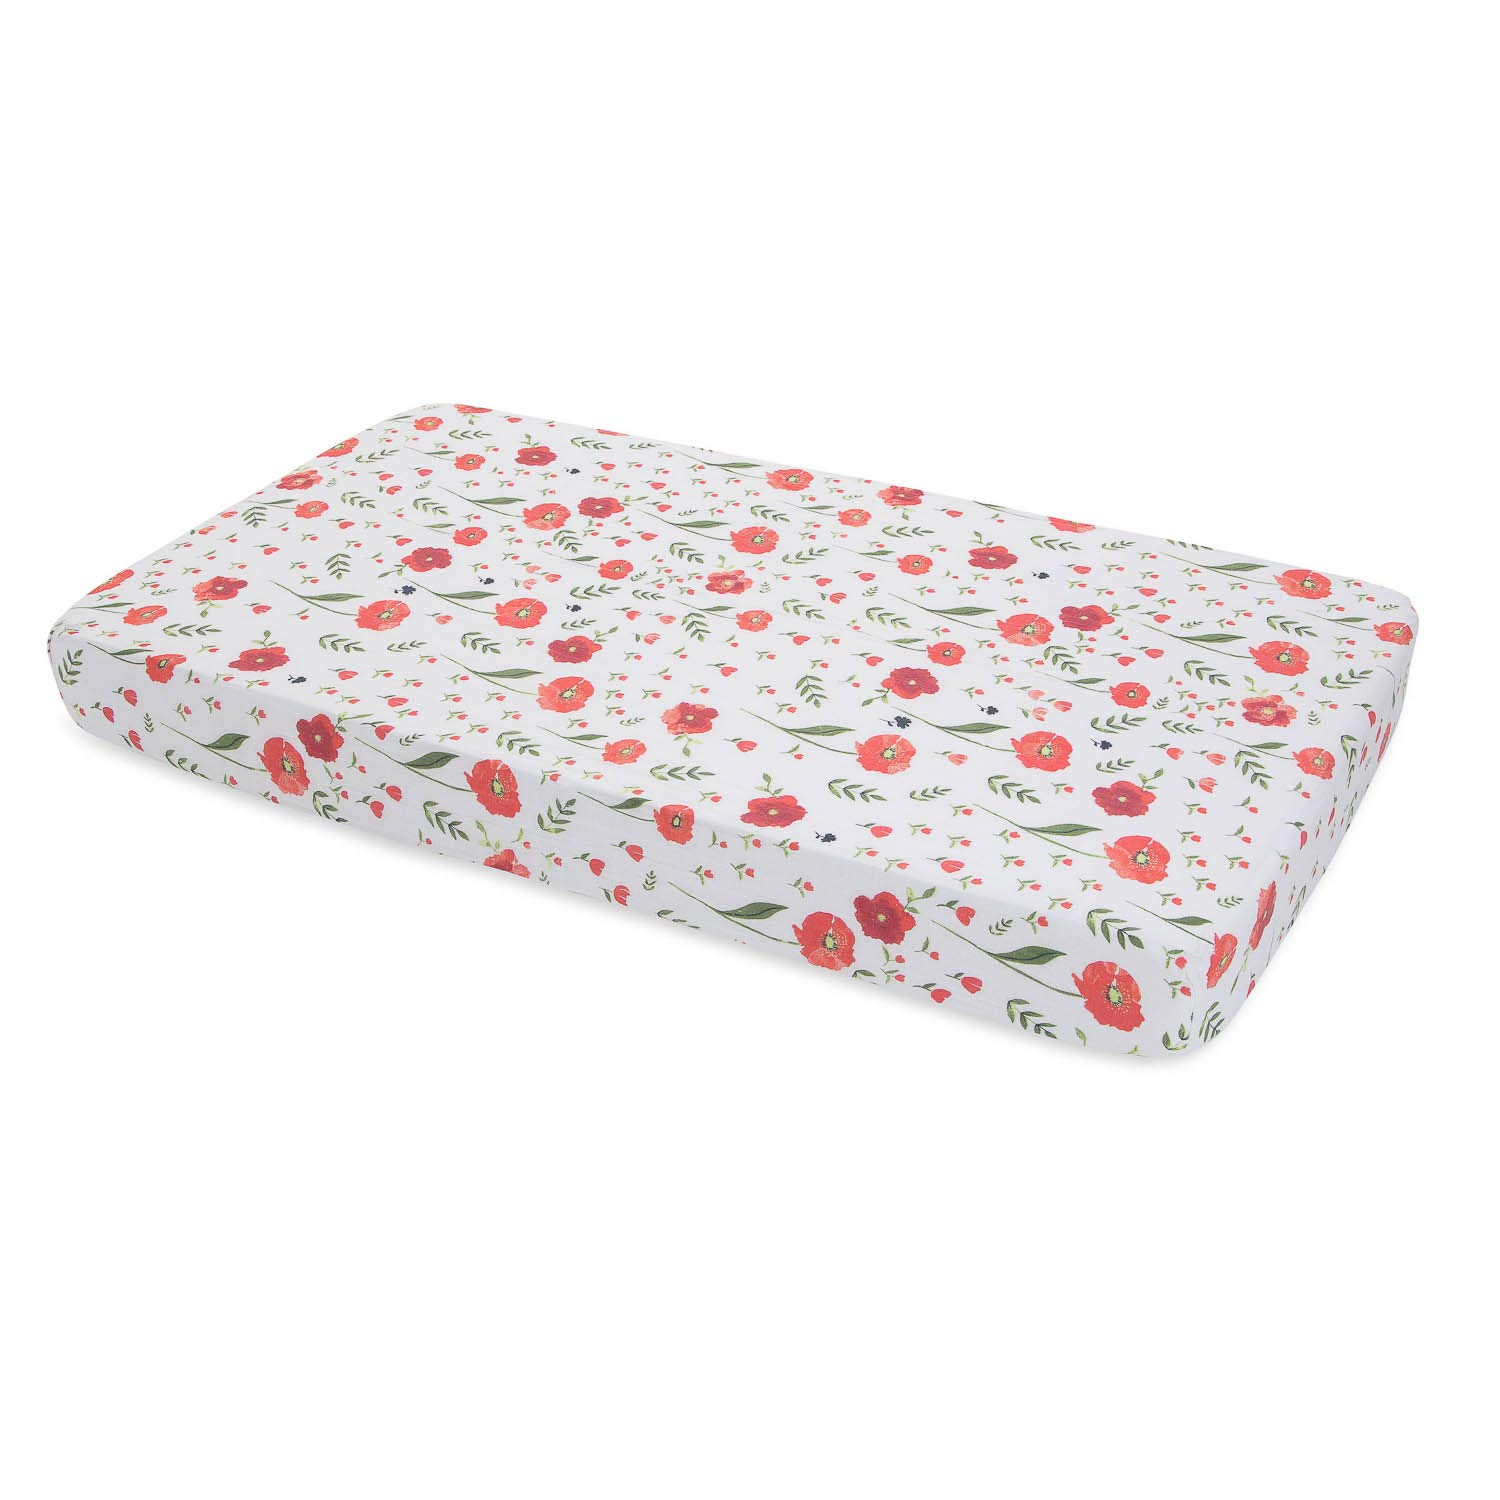 Little Unicorn Cotton Muslin Fitted Sheet - Summer Poppy by Little Unicorn